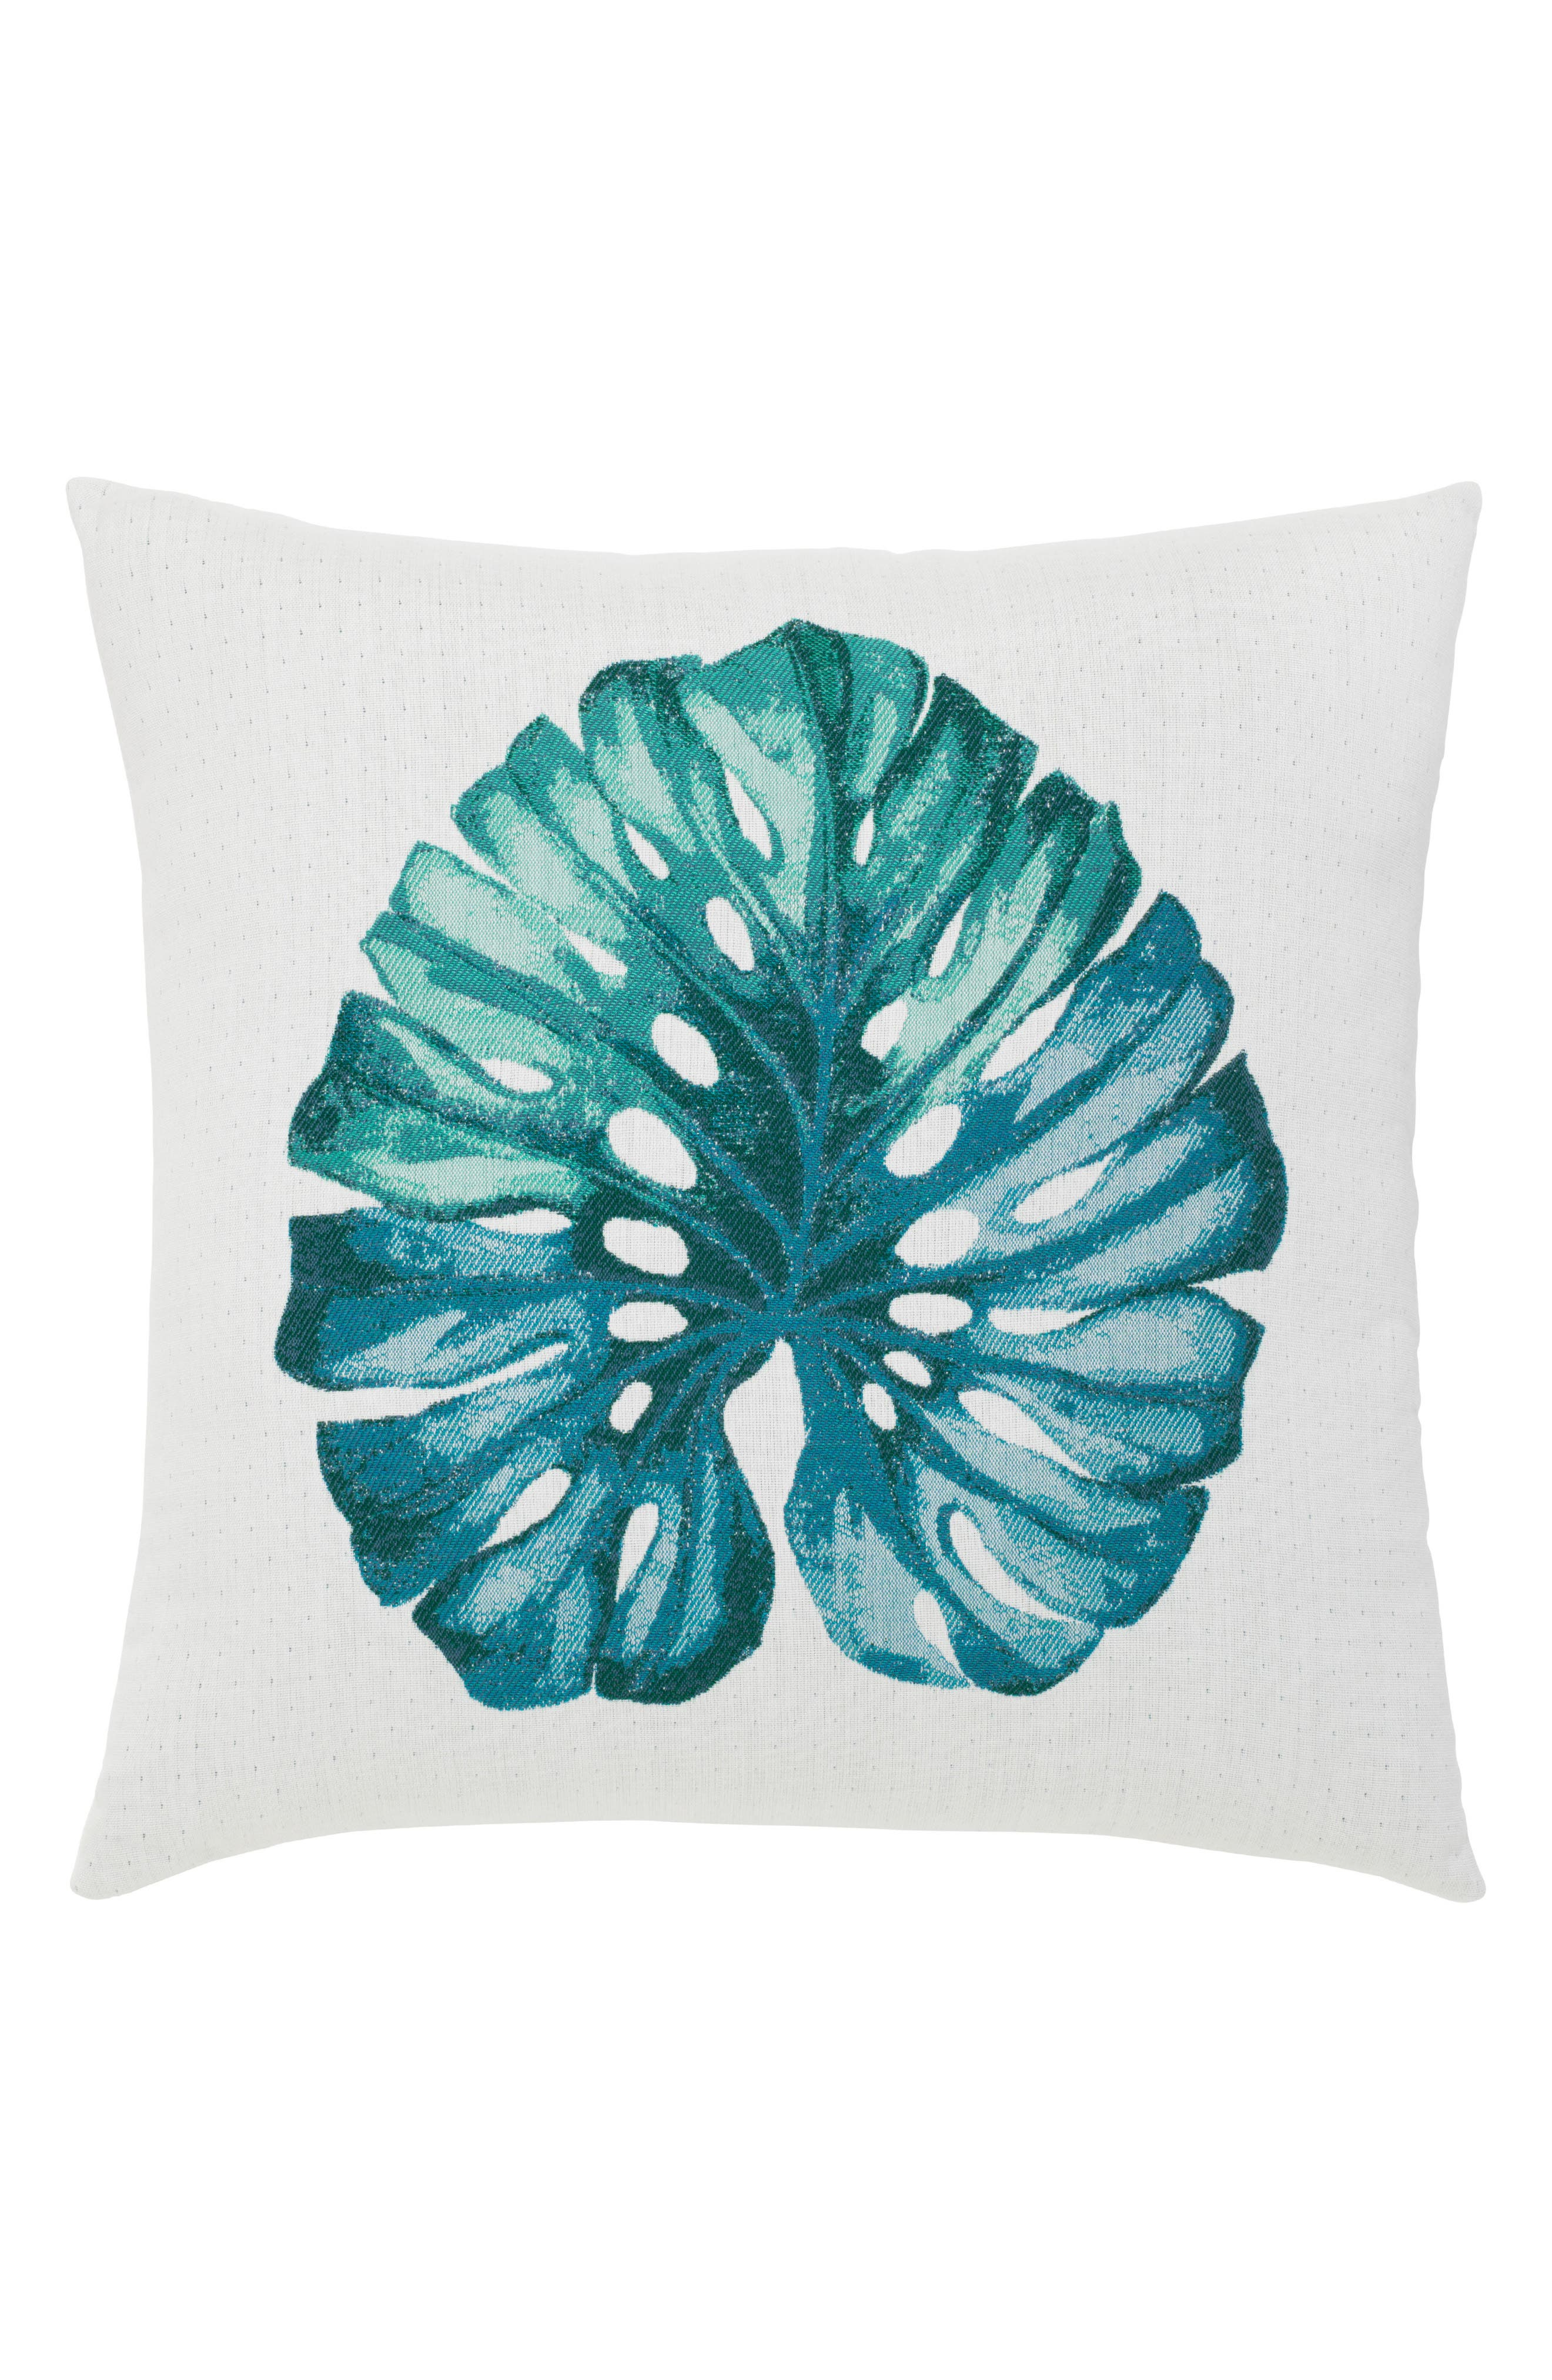 Leaf Lagoon Indoor/Outdoor Accent Pillow,                             Main thumbnail 1, color,                             White Blue